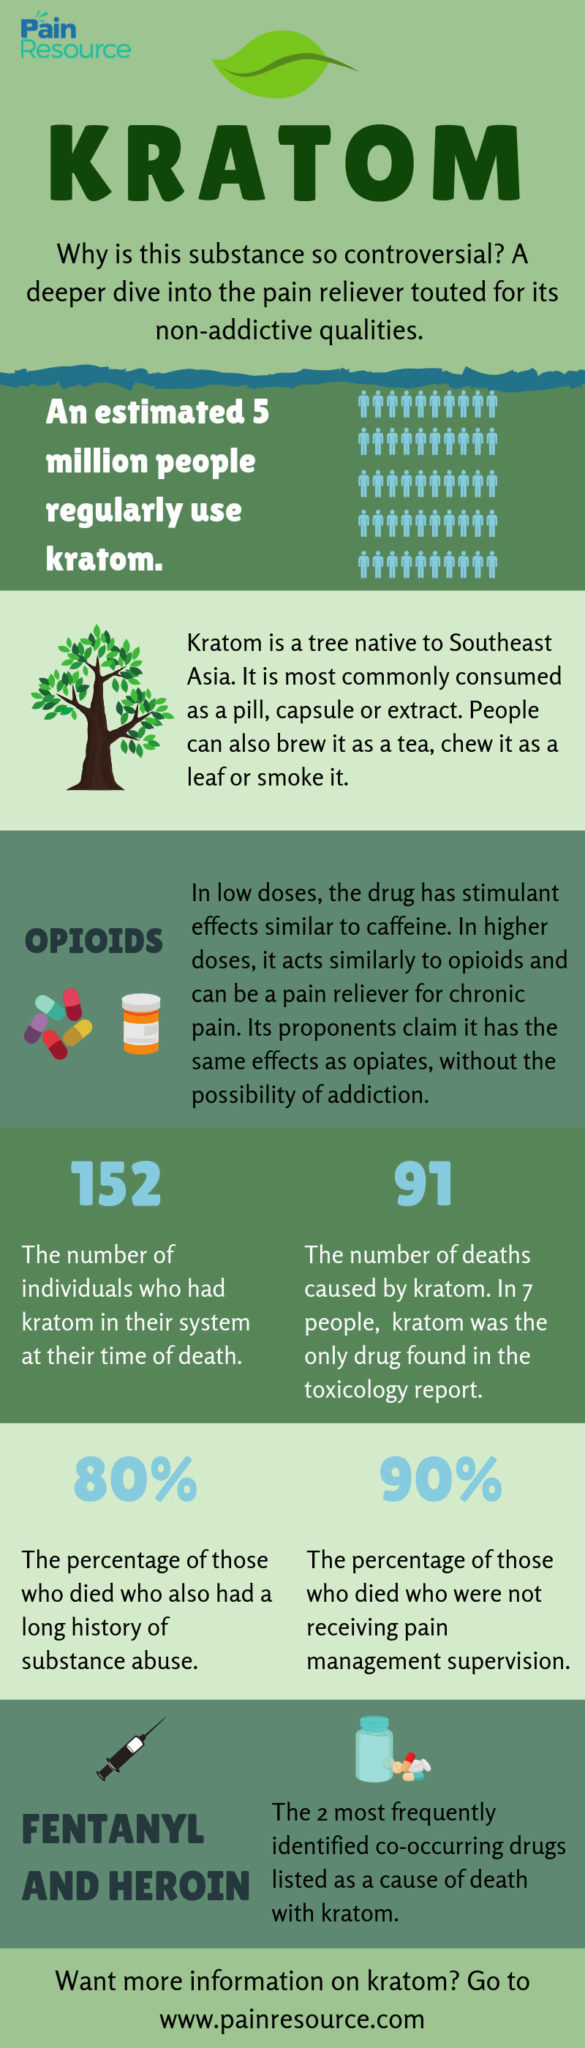 kratom abuse, CDC Report: Clear Link Between Kratom and Overdose Deaths